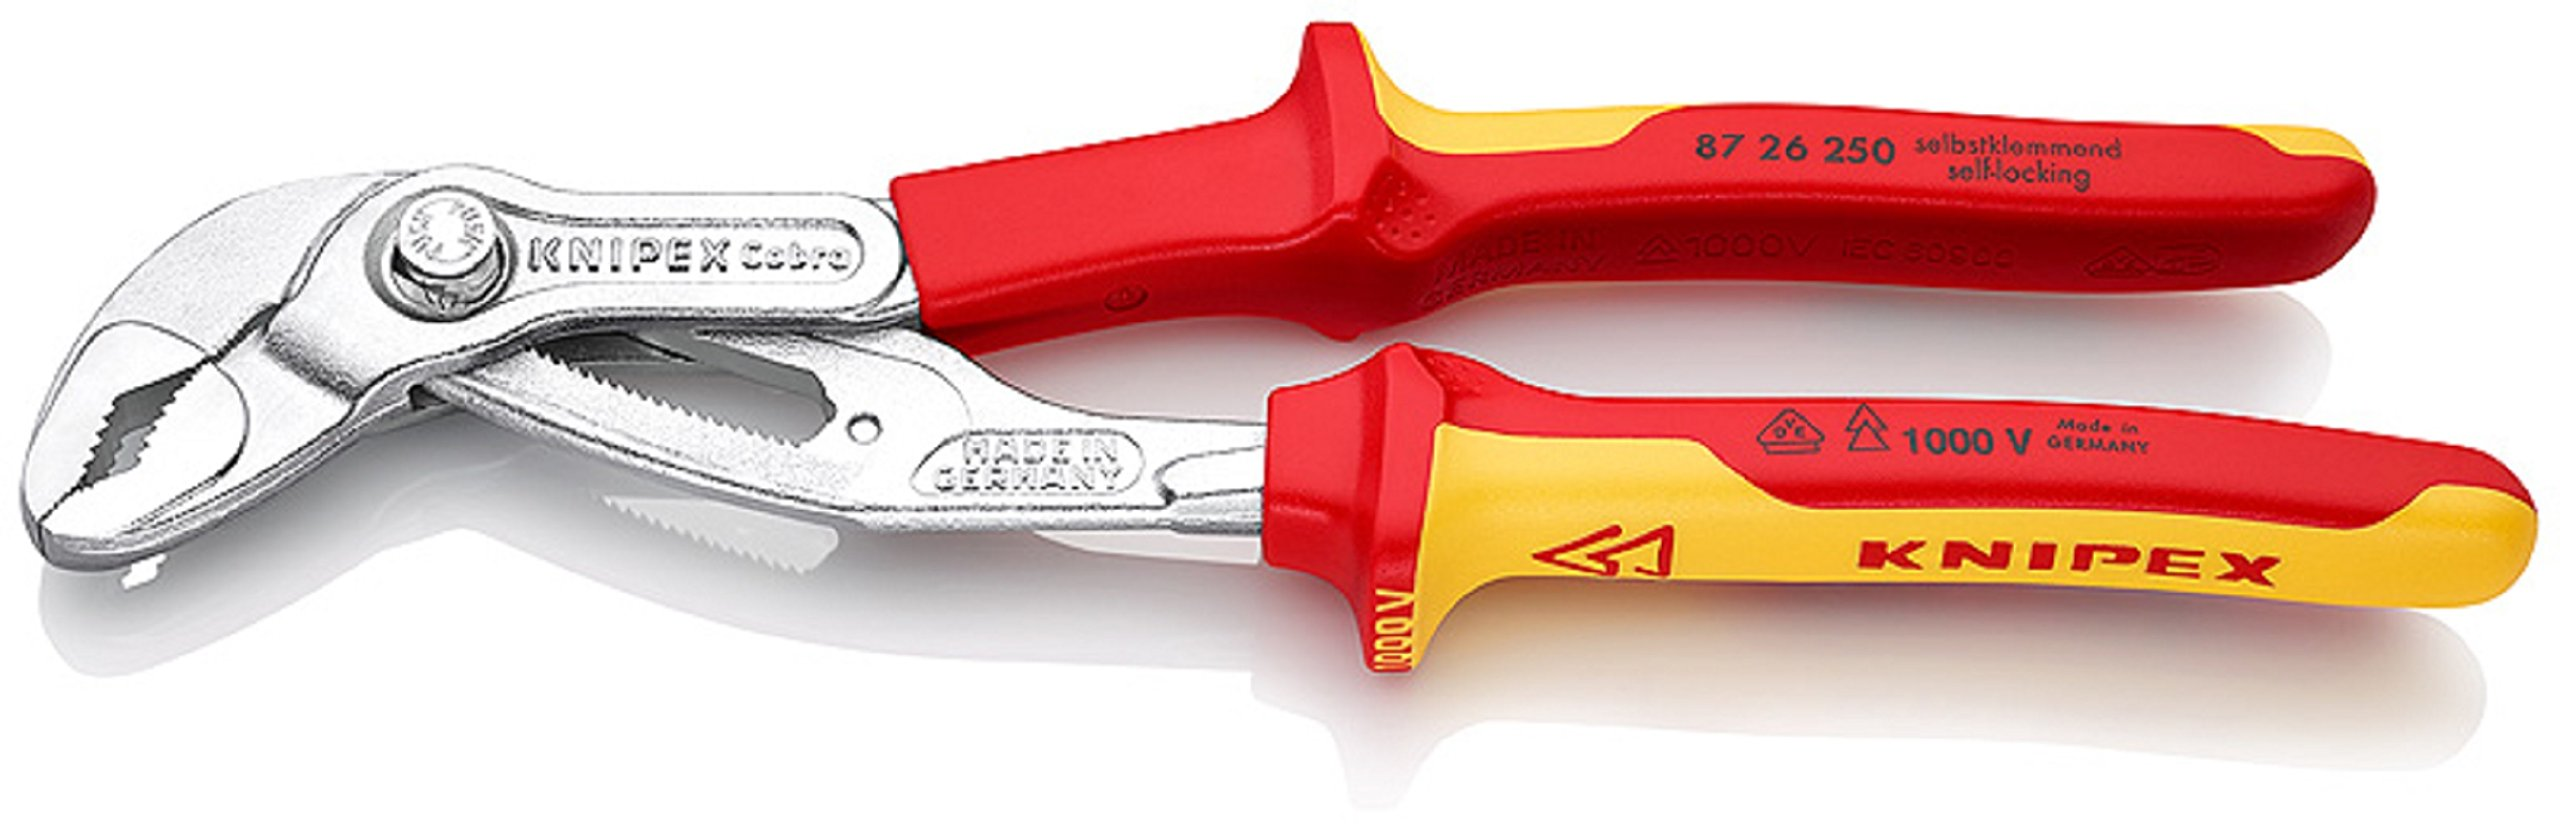 87 26 250 T BK Water Pump Pliers ''Cobra VDE'' 9, 84'' with Tether Attachment Pt. In Blister Packaging